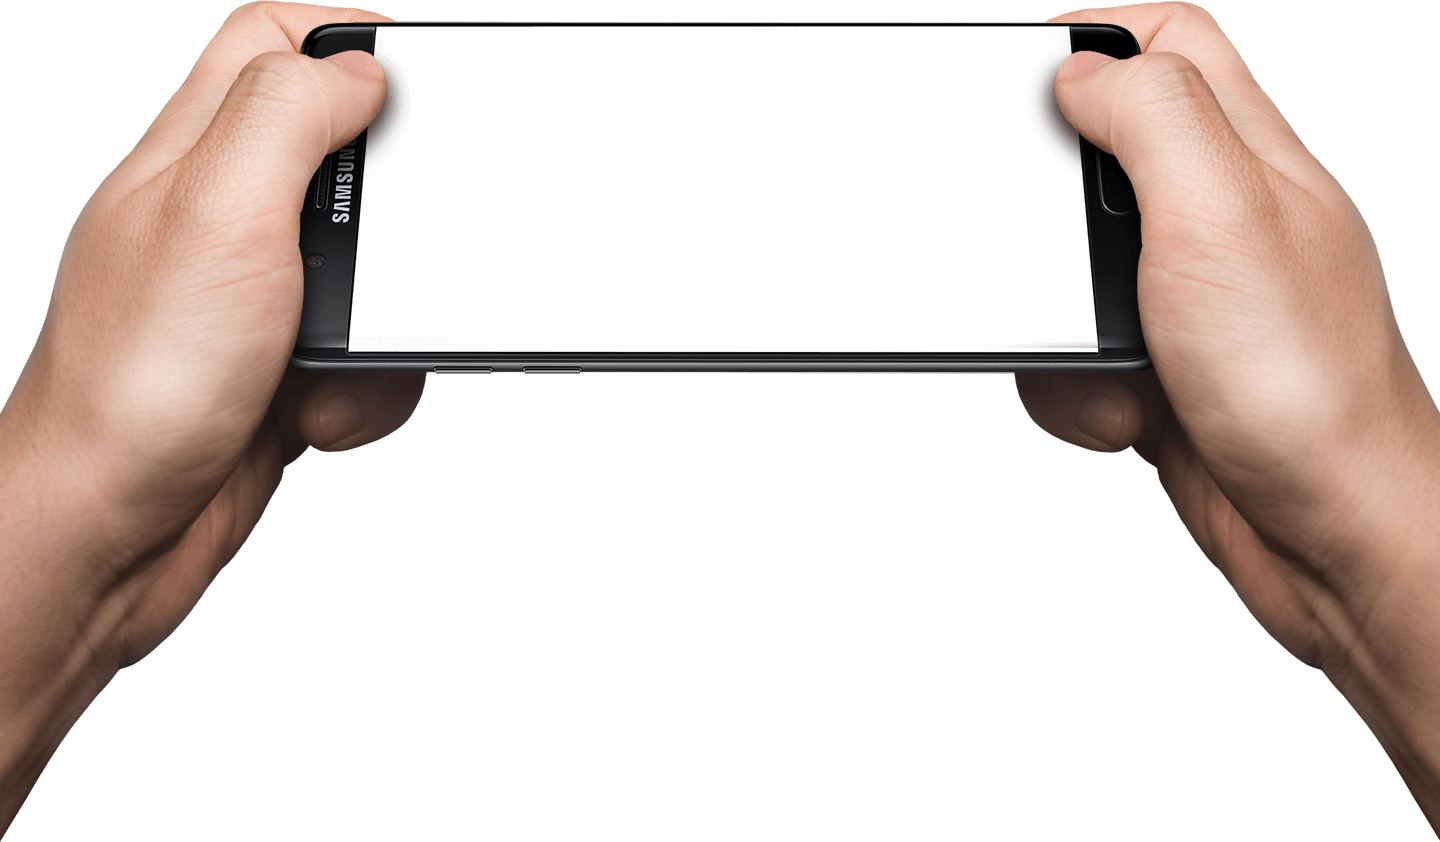 Game clipart mobile game. Phone in hand png